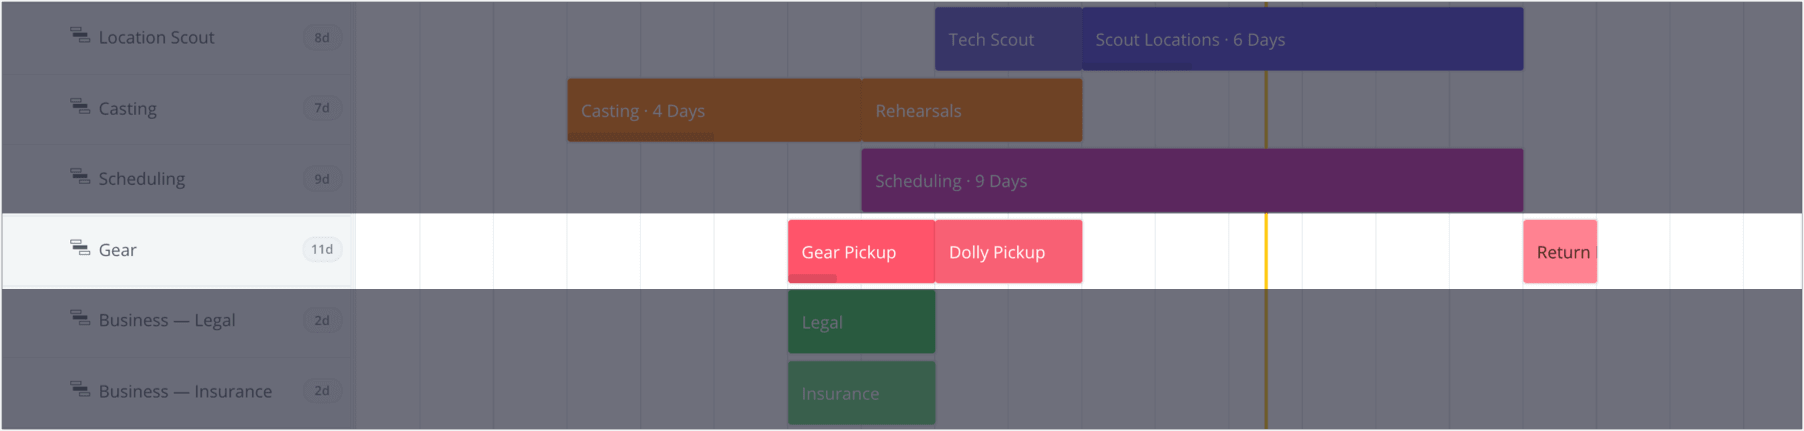 How to Plan a Shoot with a Film & Video Production Calendar - StudioBinder - 15